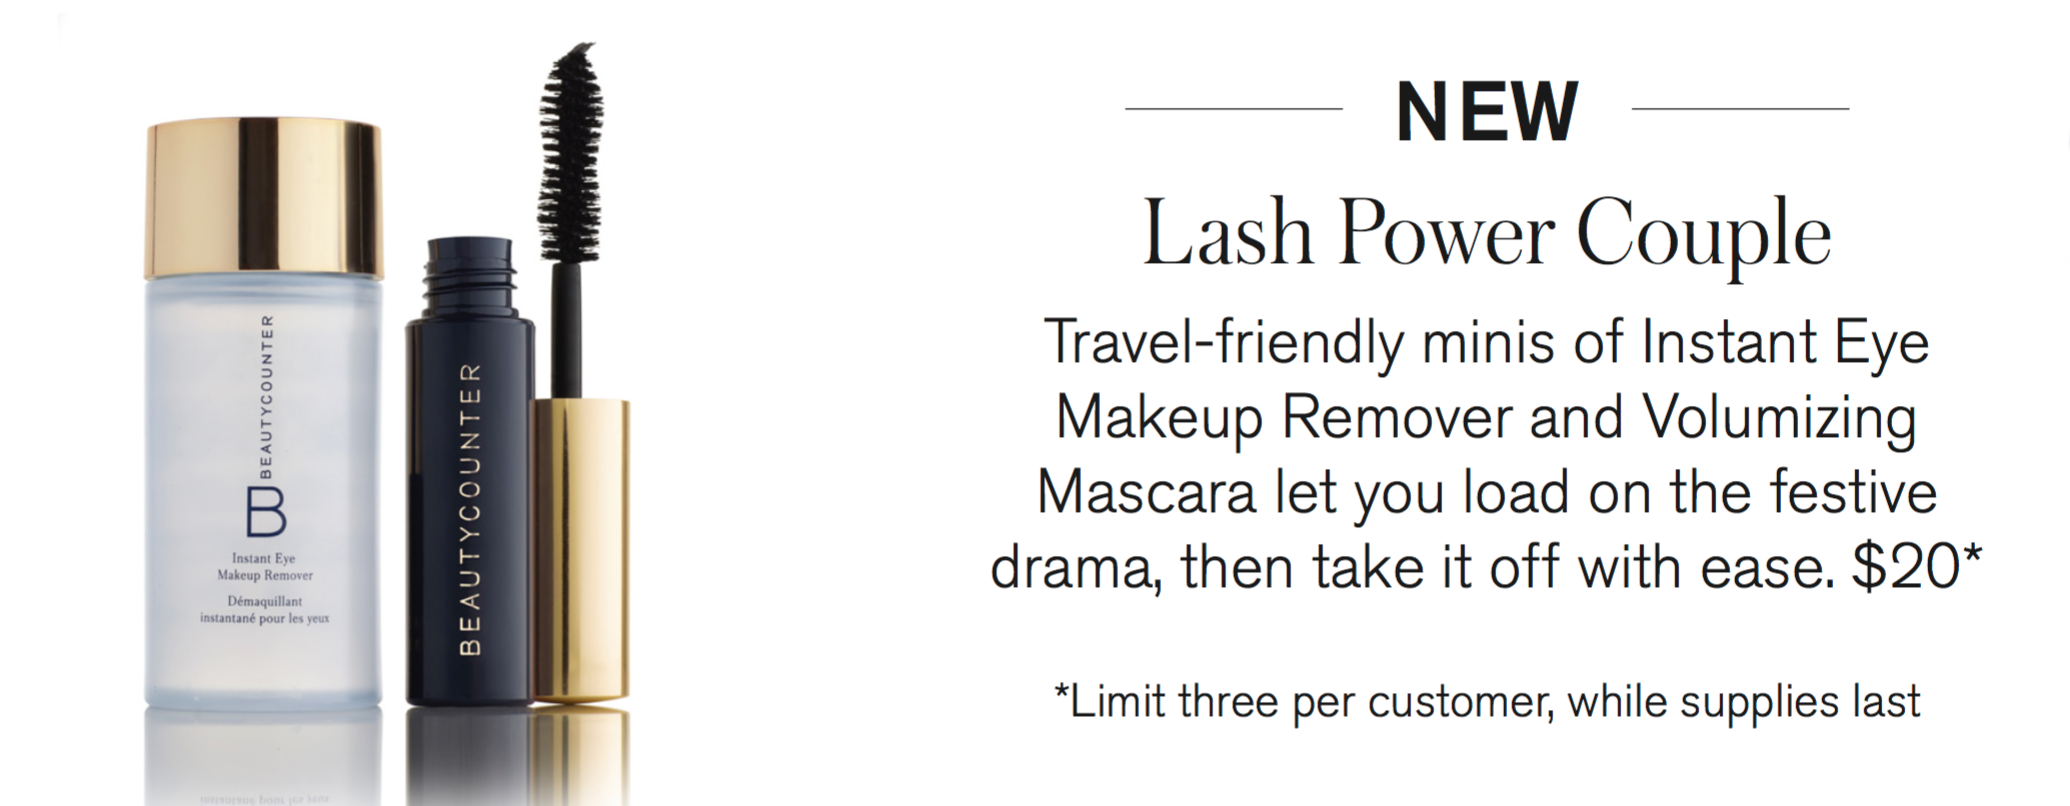 lash power couple beautycounter